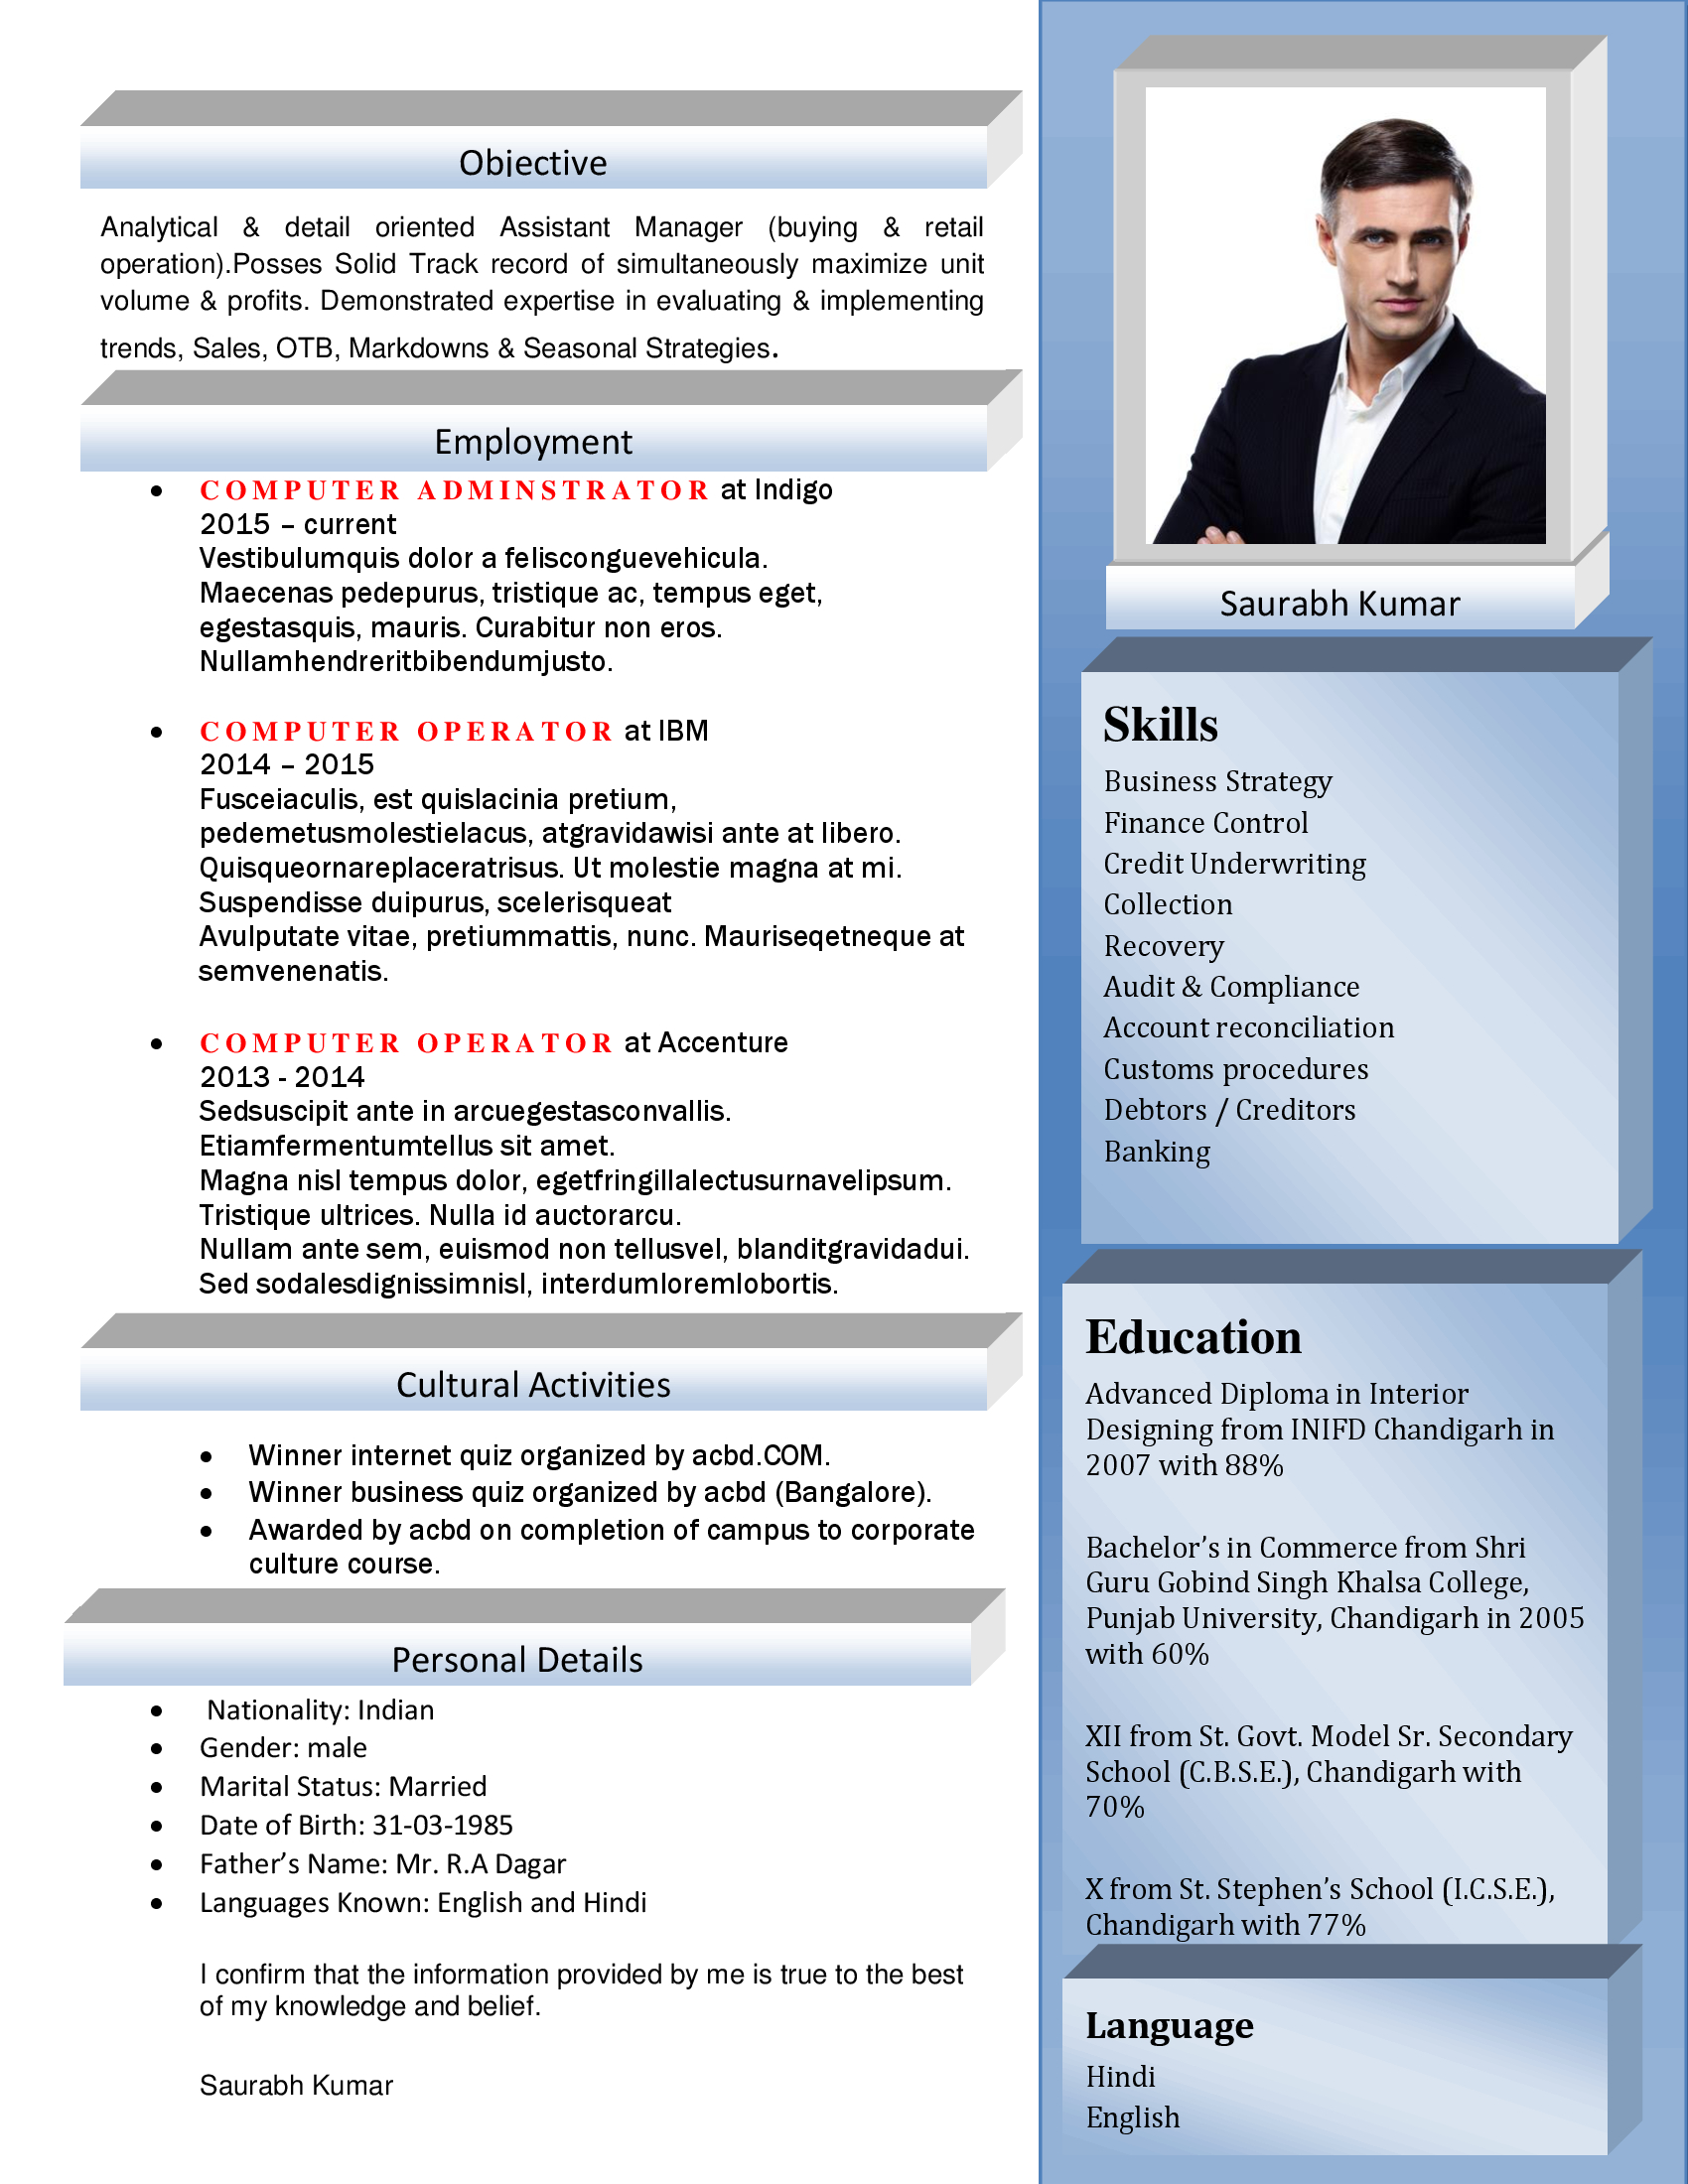 Ceo Executive Resume Samples Seo Executive Resume Seo Executive Resume Format Seo